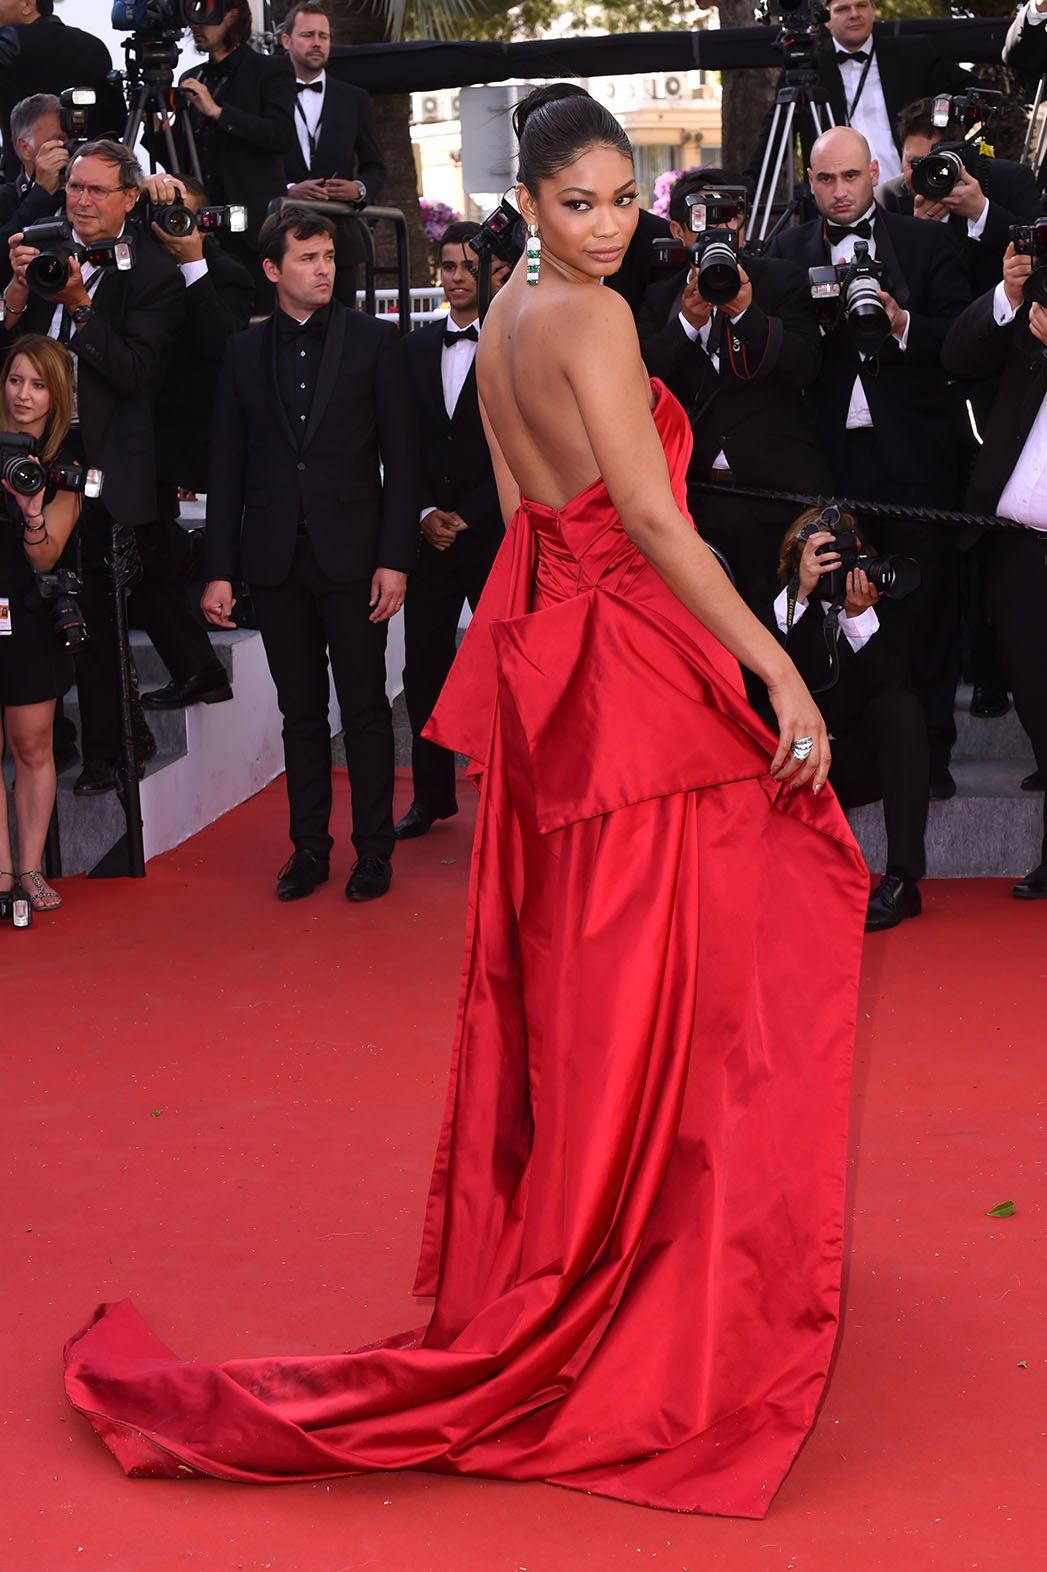 http://enfilme.com/img/content/chanel_iman_cannes2015_Enfilme_6154w.jpg